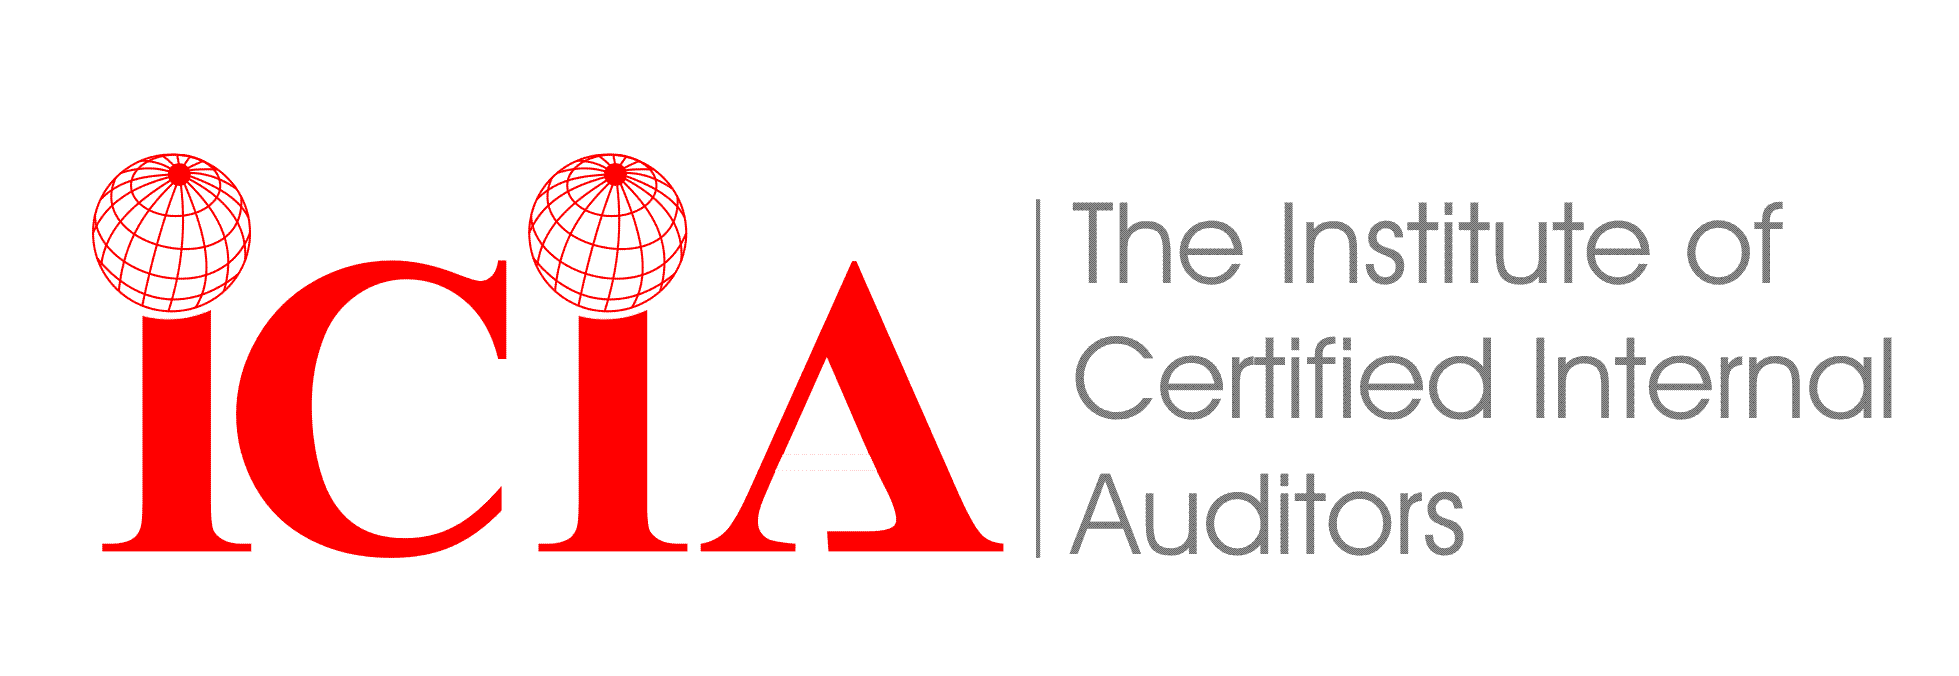 The insitute of certified internal auditors icia pakistan nairaland forum xflitez Image collections